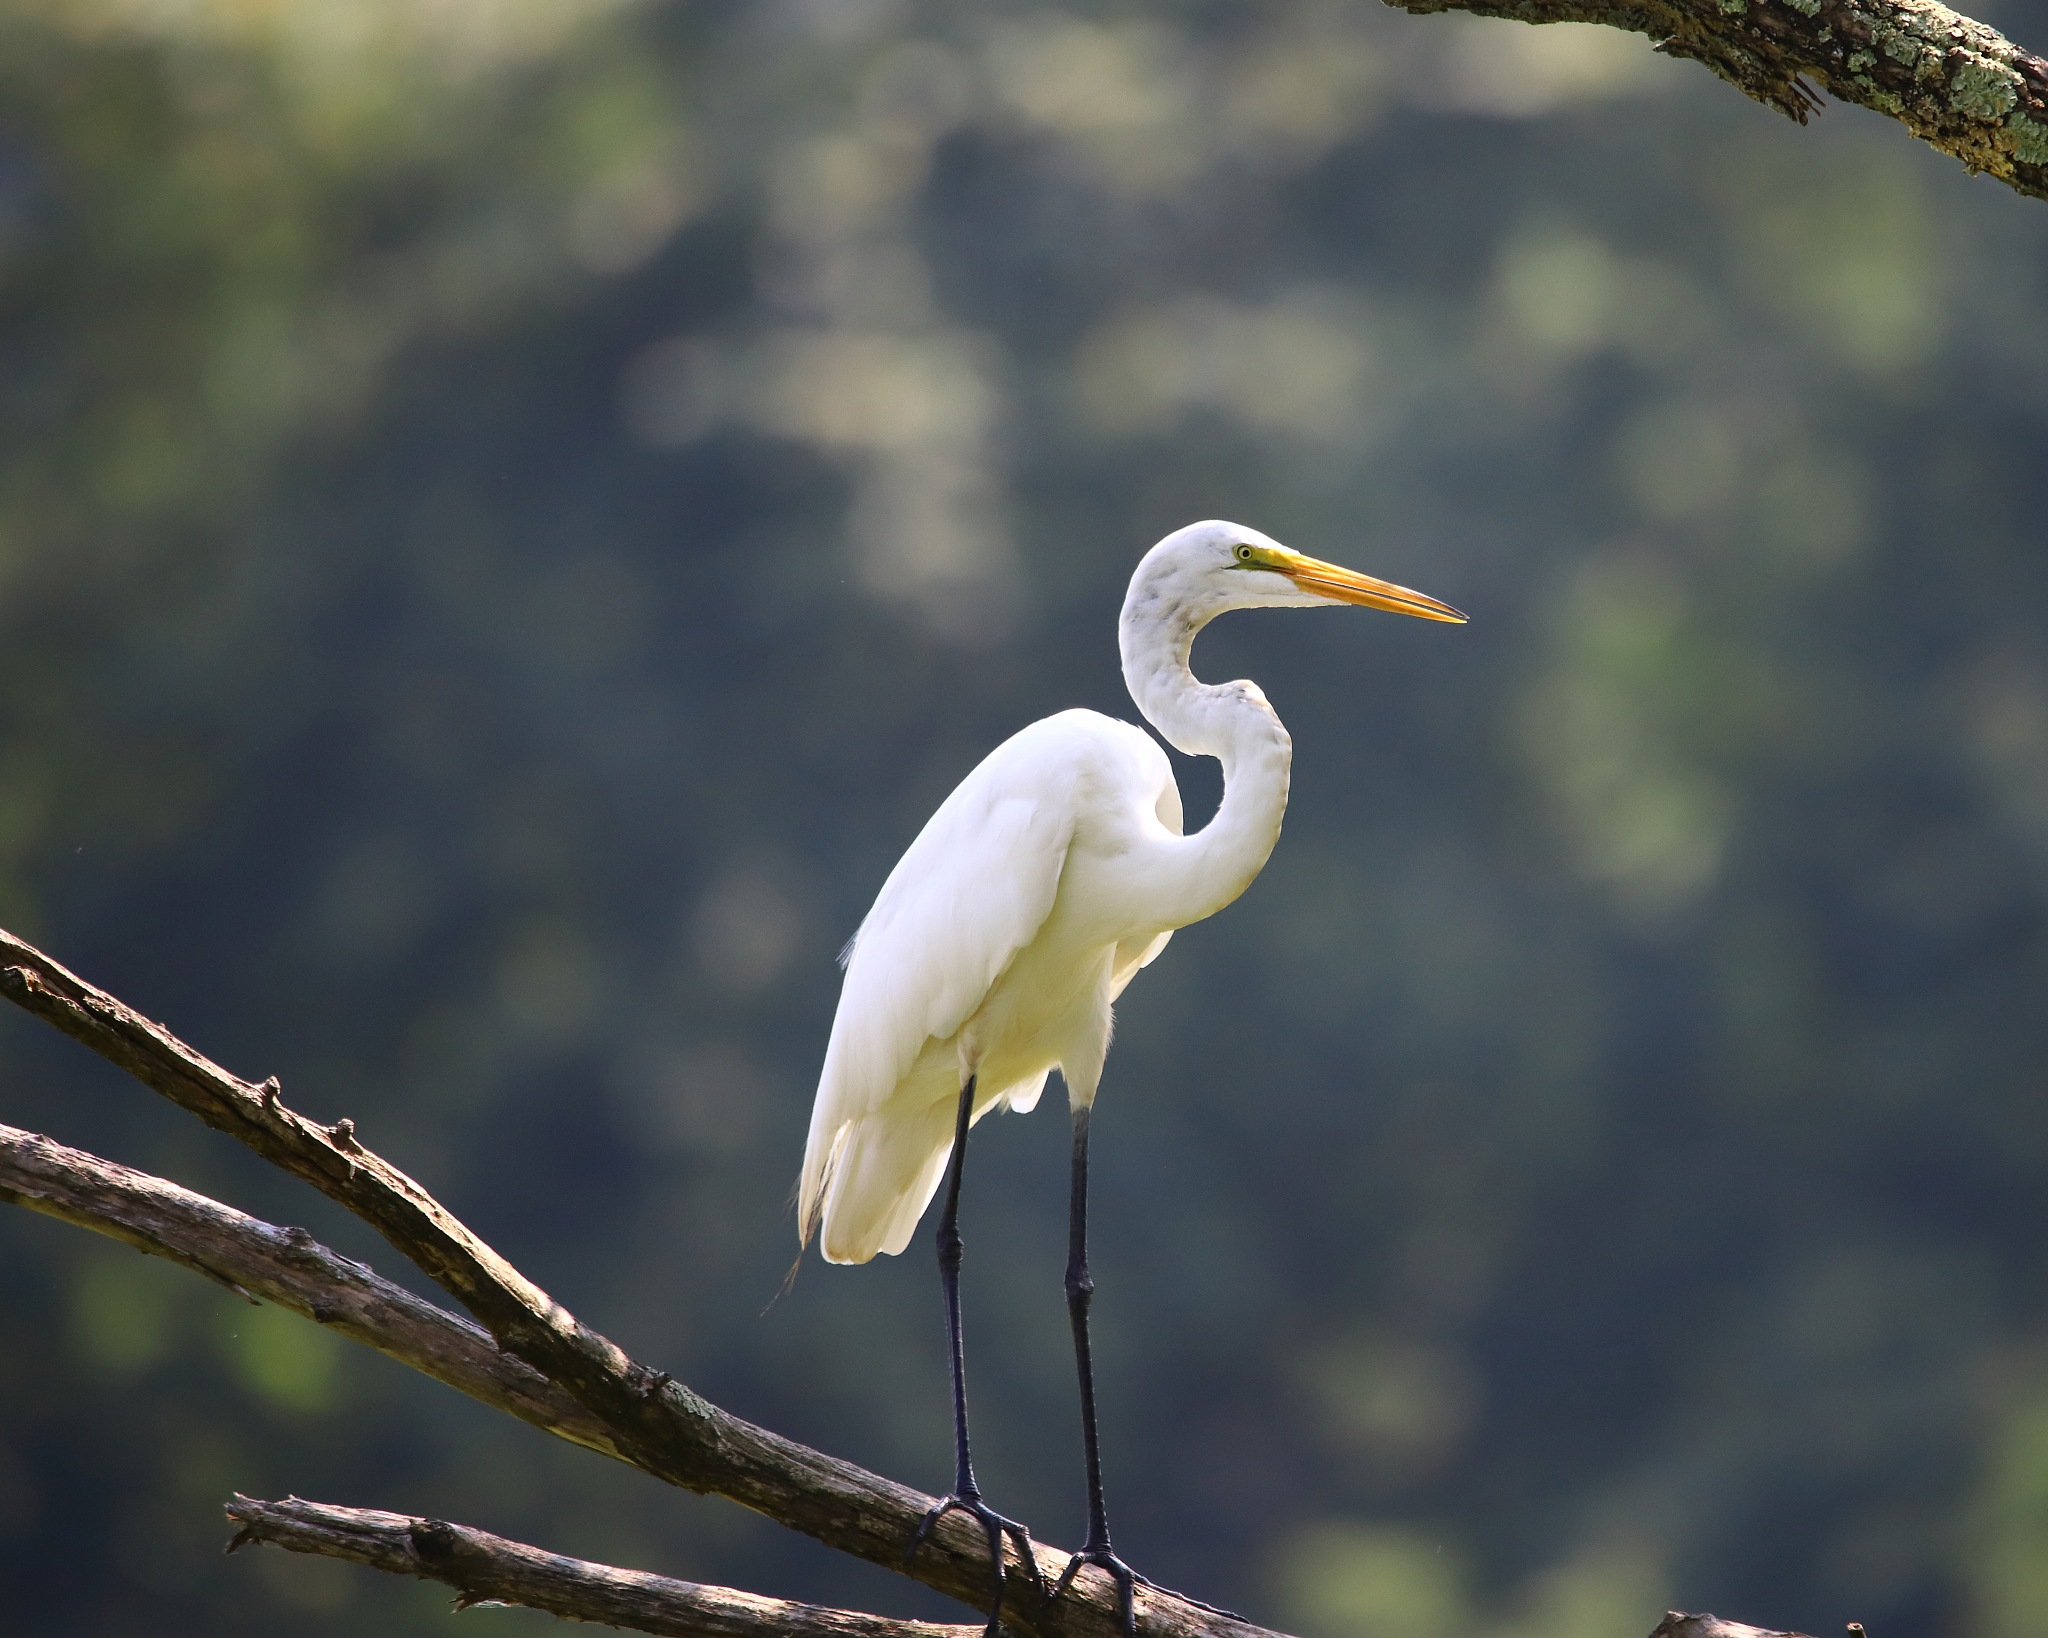 Egret on a branch by SMURFF